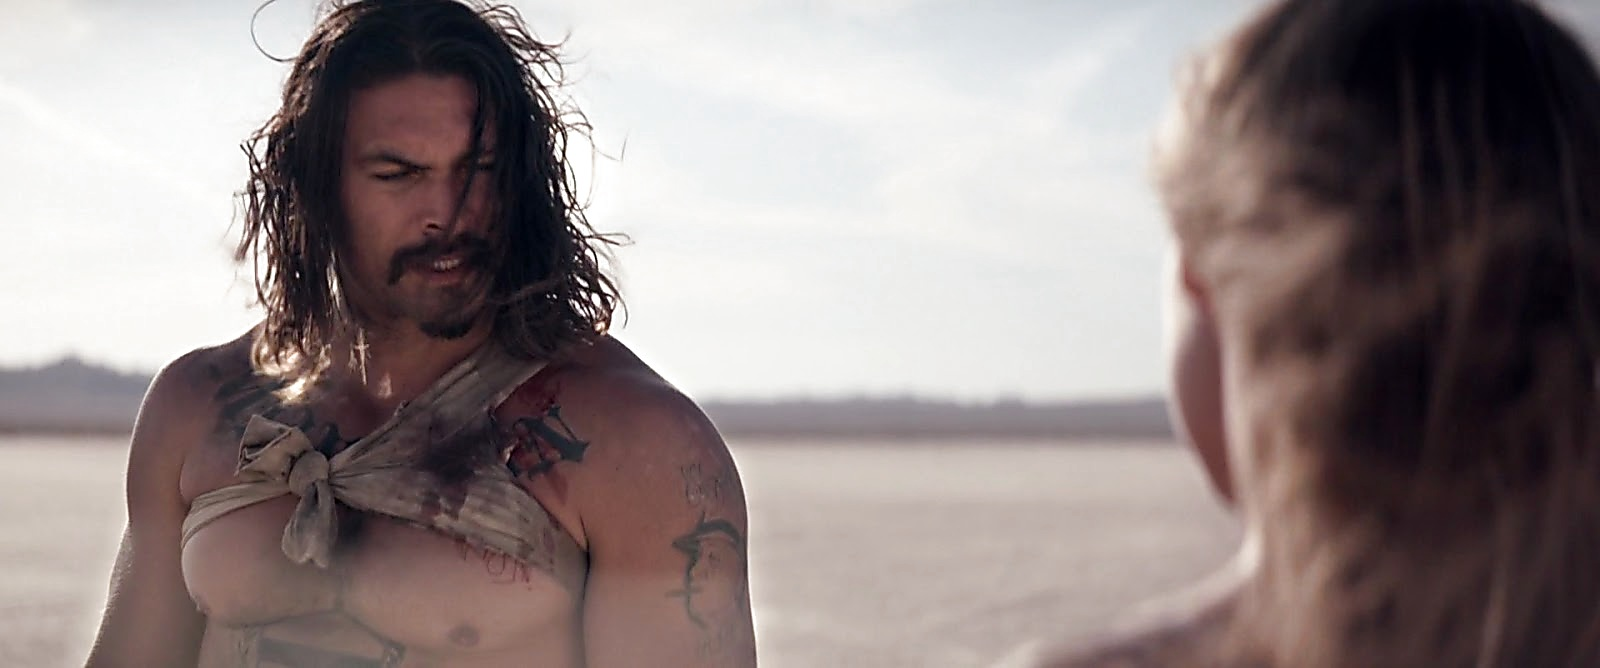 Jason Momoa The Bad Batch 2017 06 23 15jpg